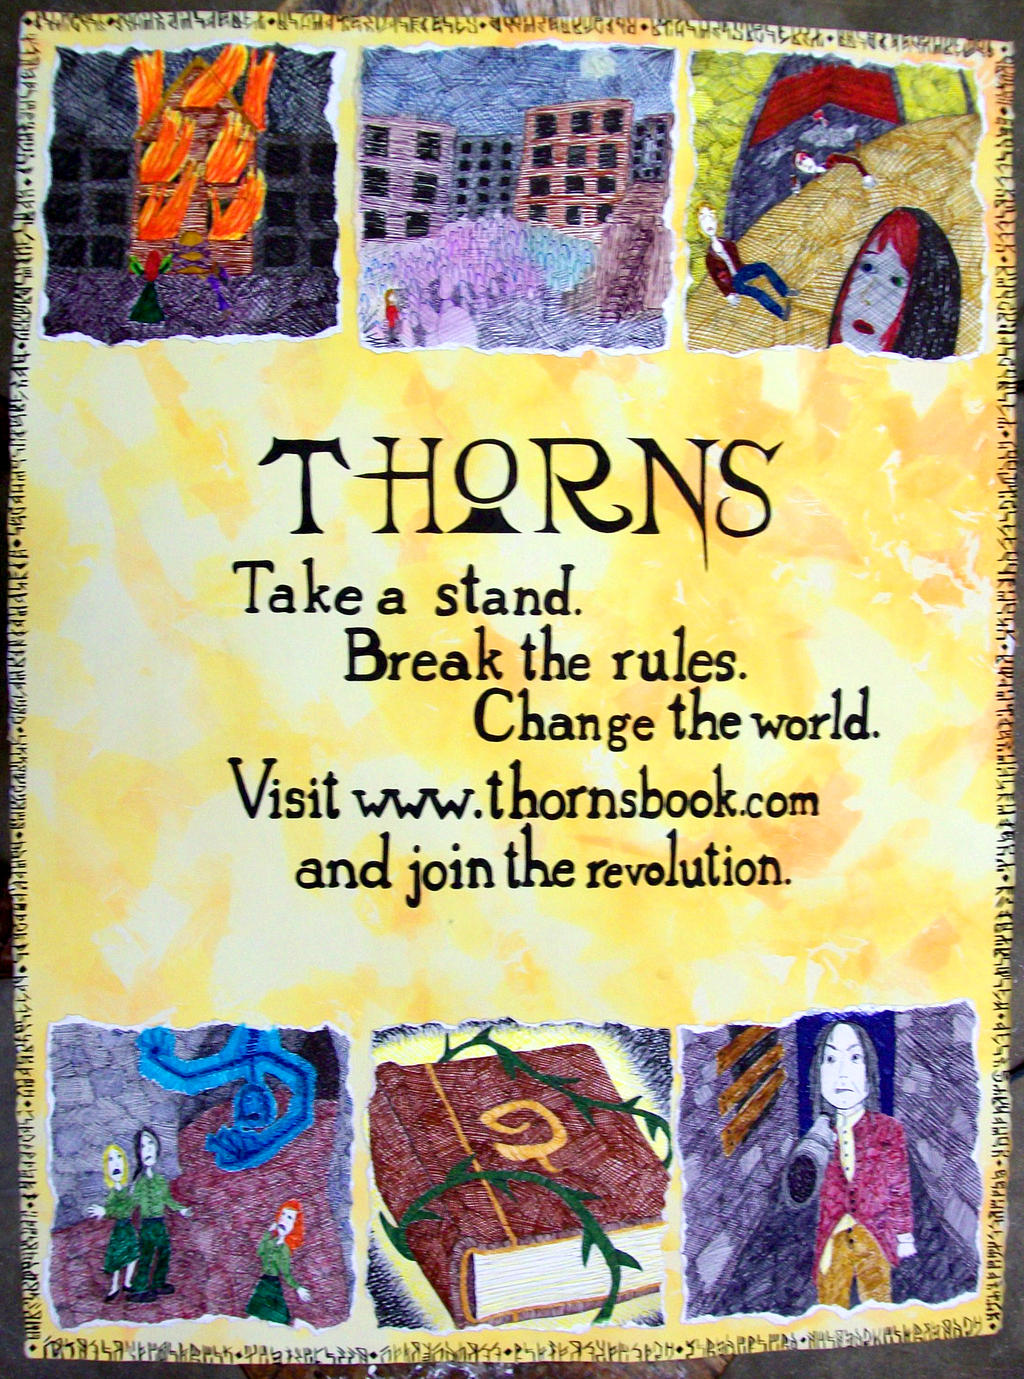 Thorns Promotional Poster by MyLaundryStinks